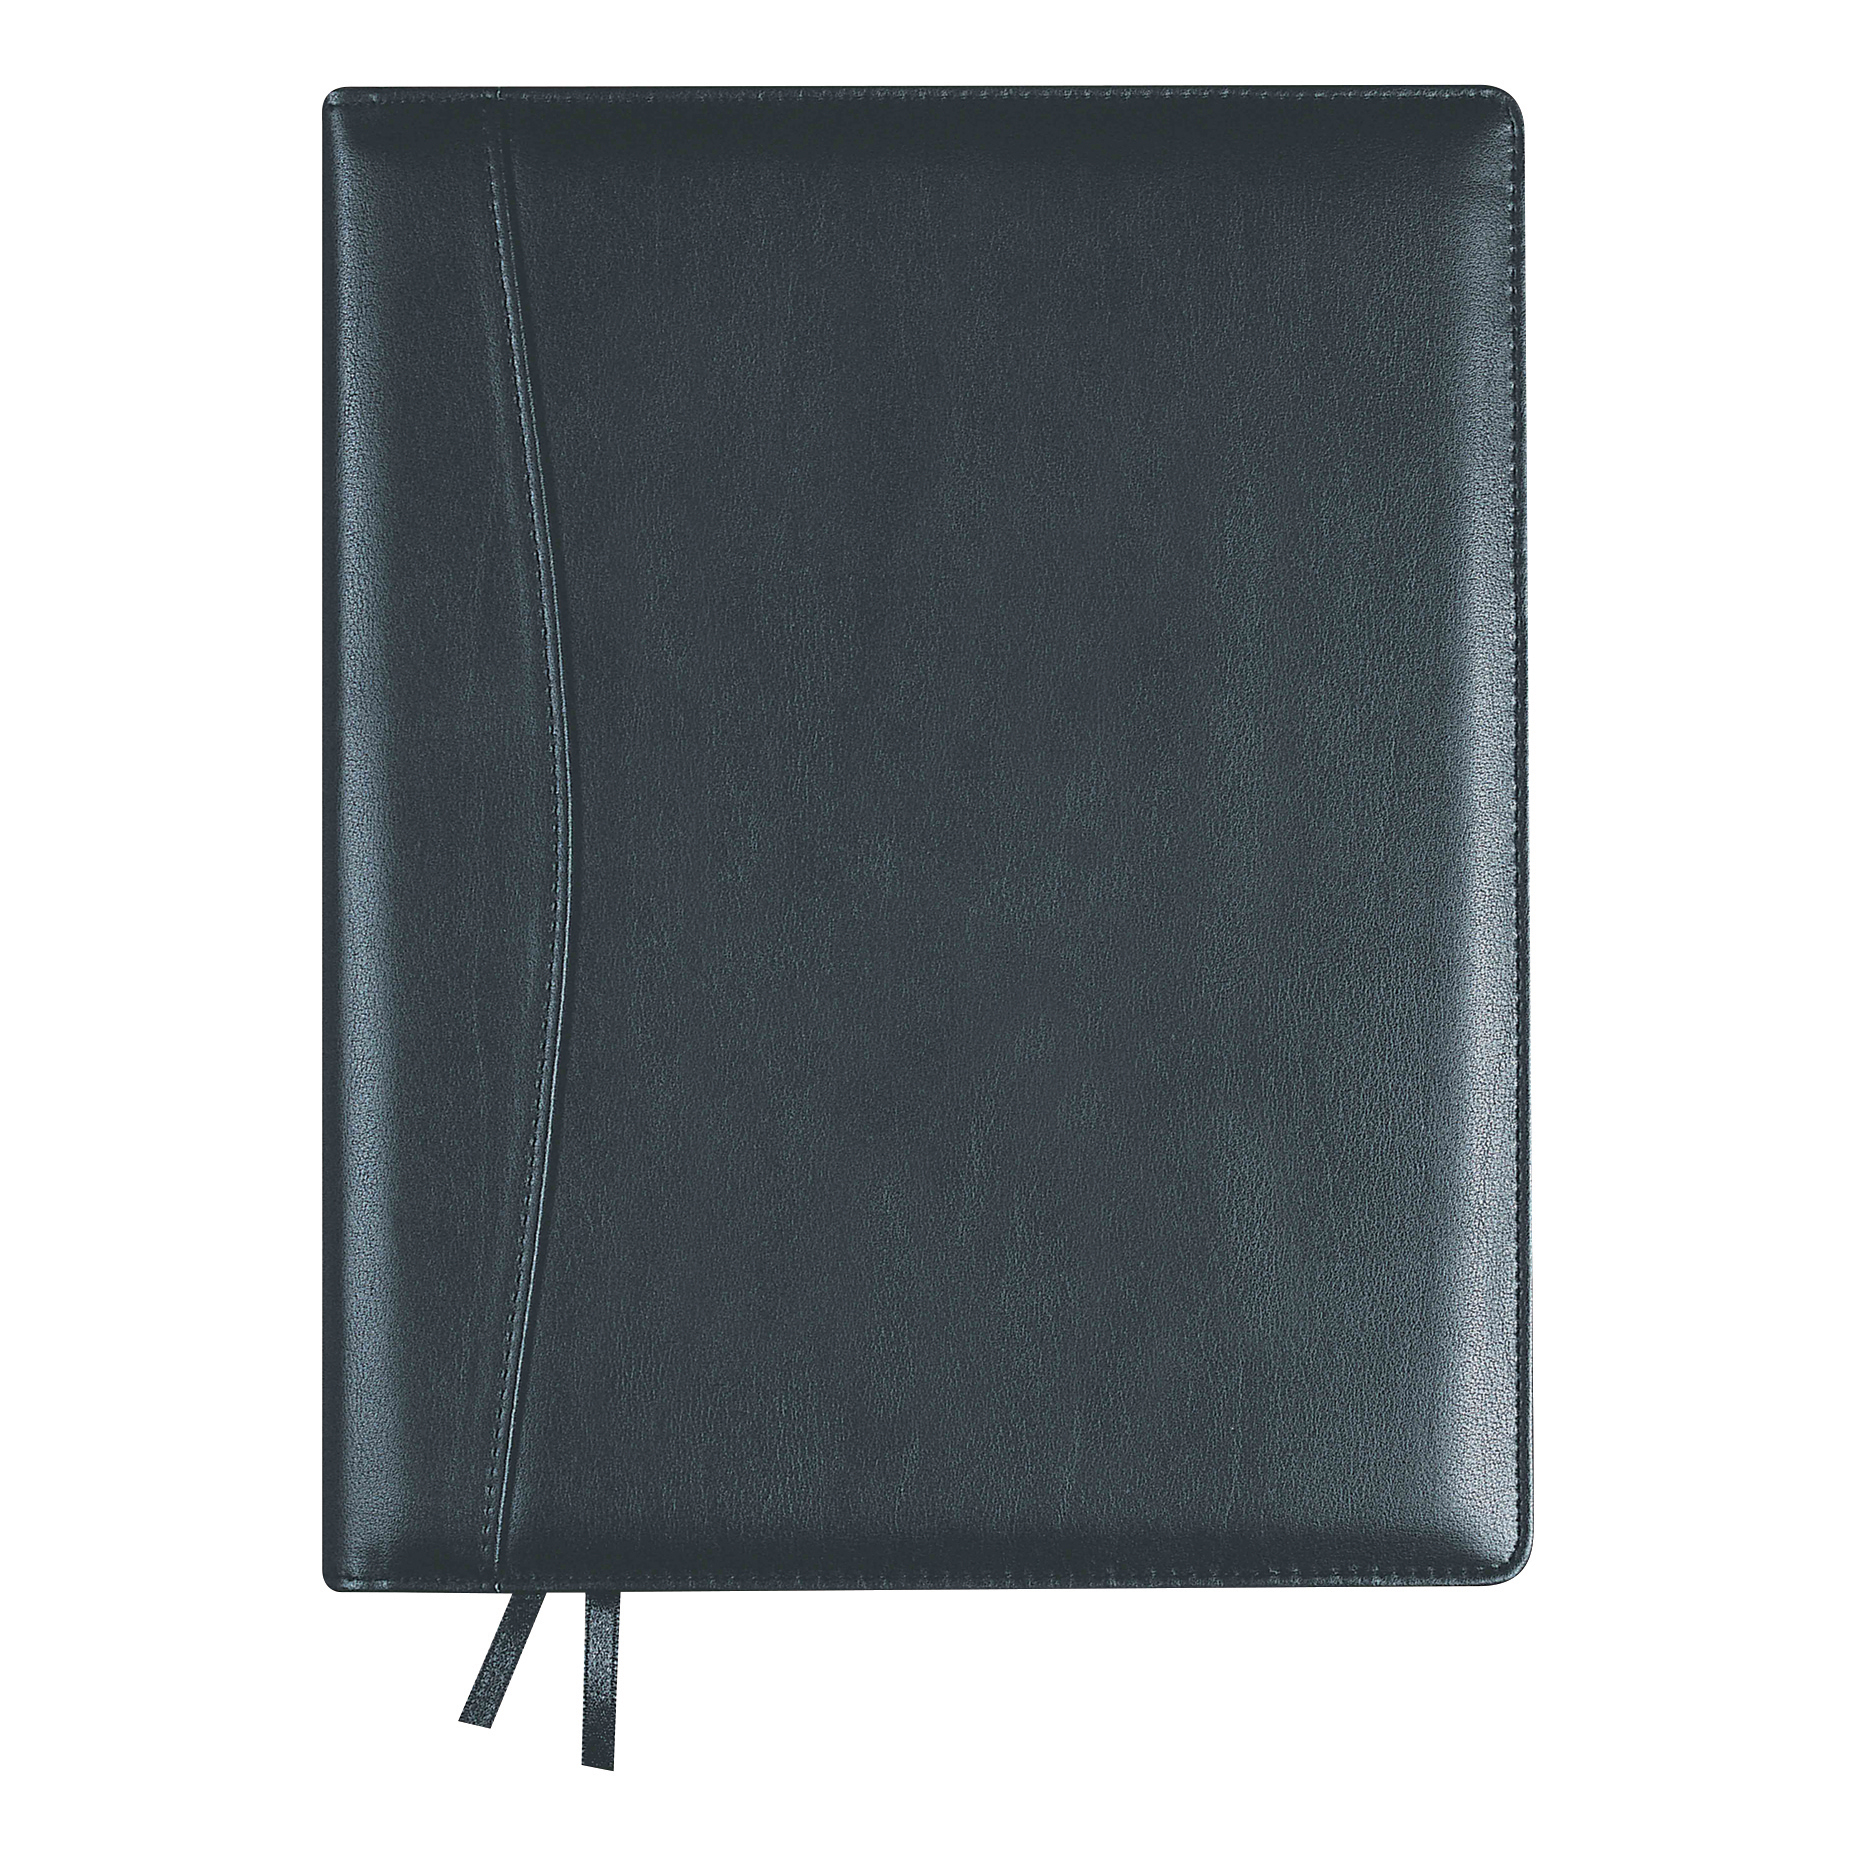 Collins 2019 Elite Manager Diary Week to View Wirobound 190x260mm Black Ref 1190V 2019